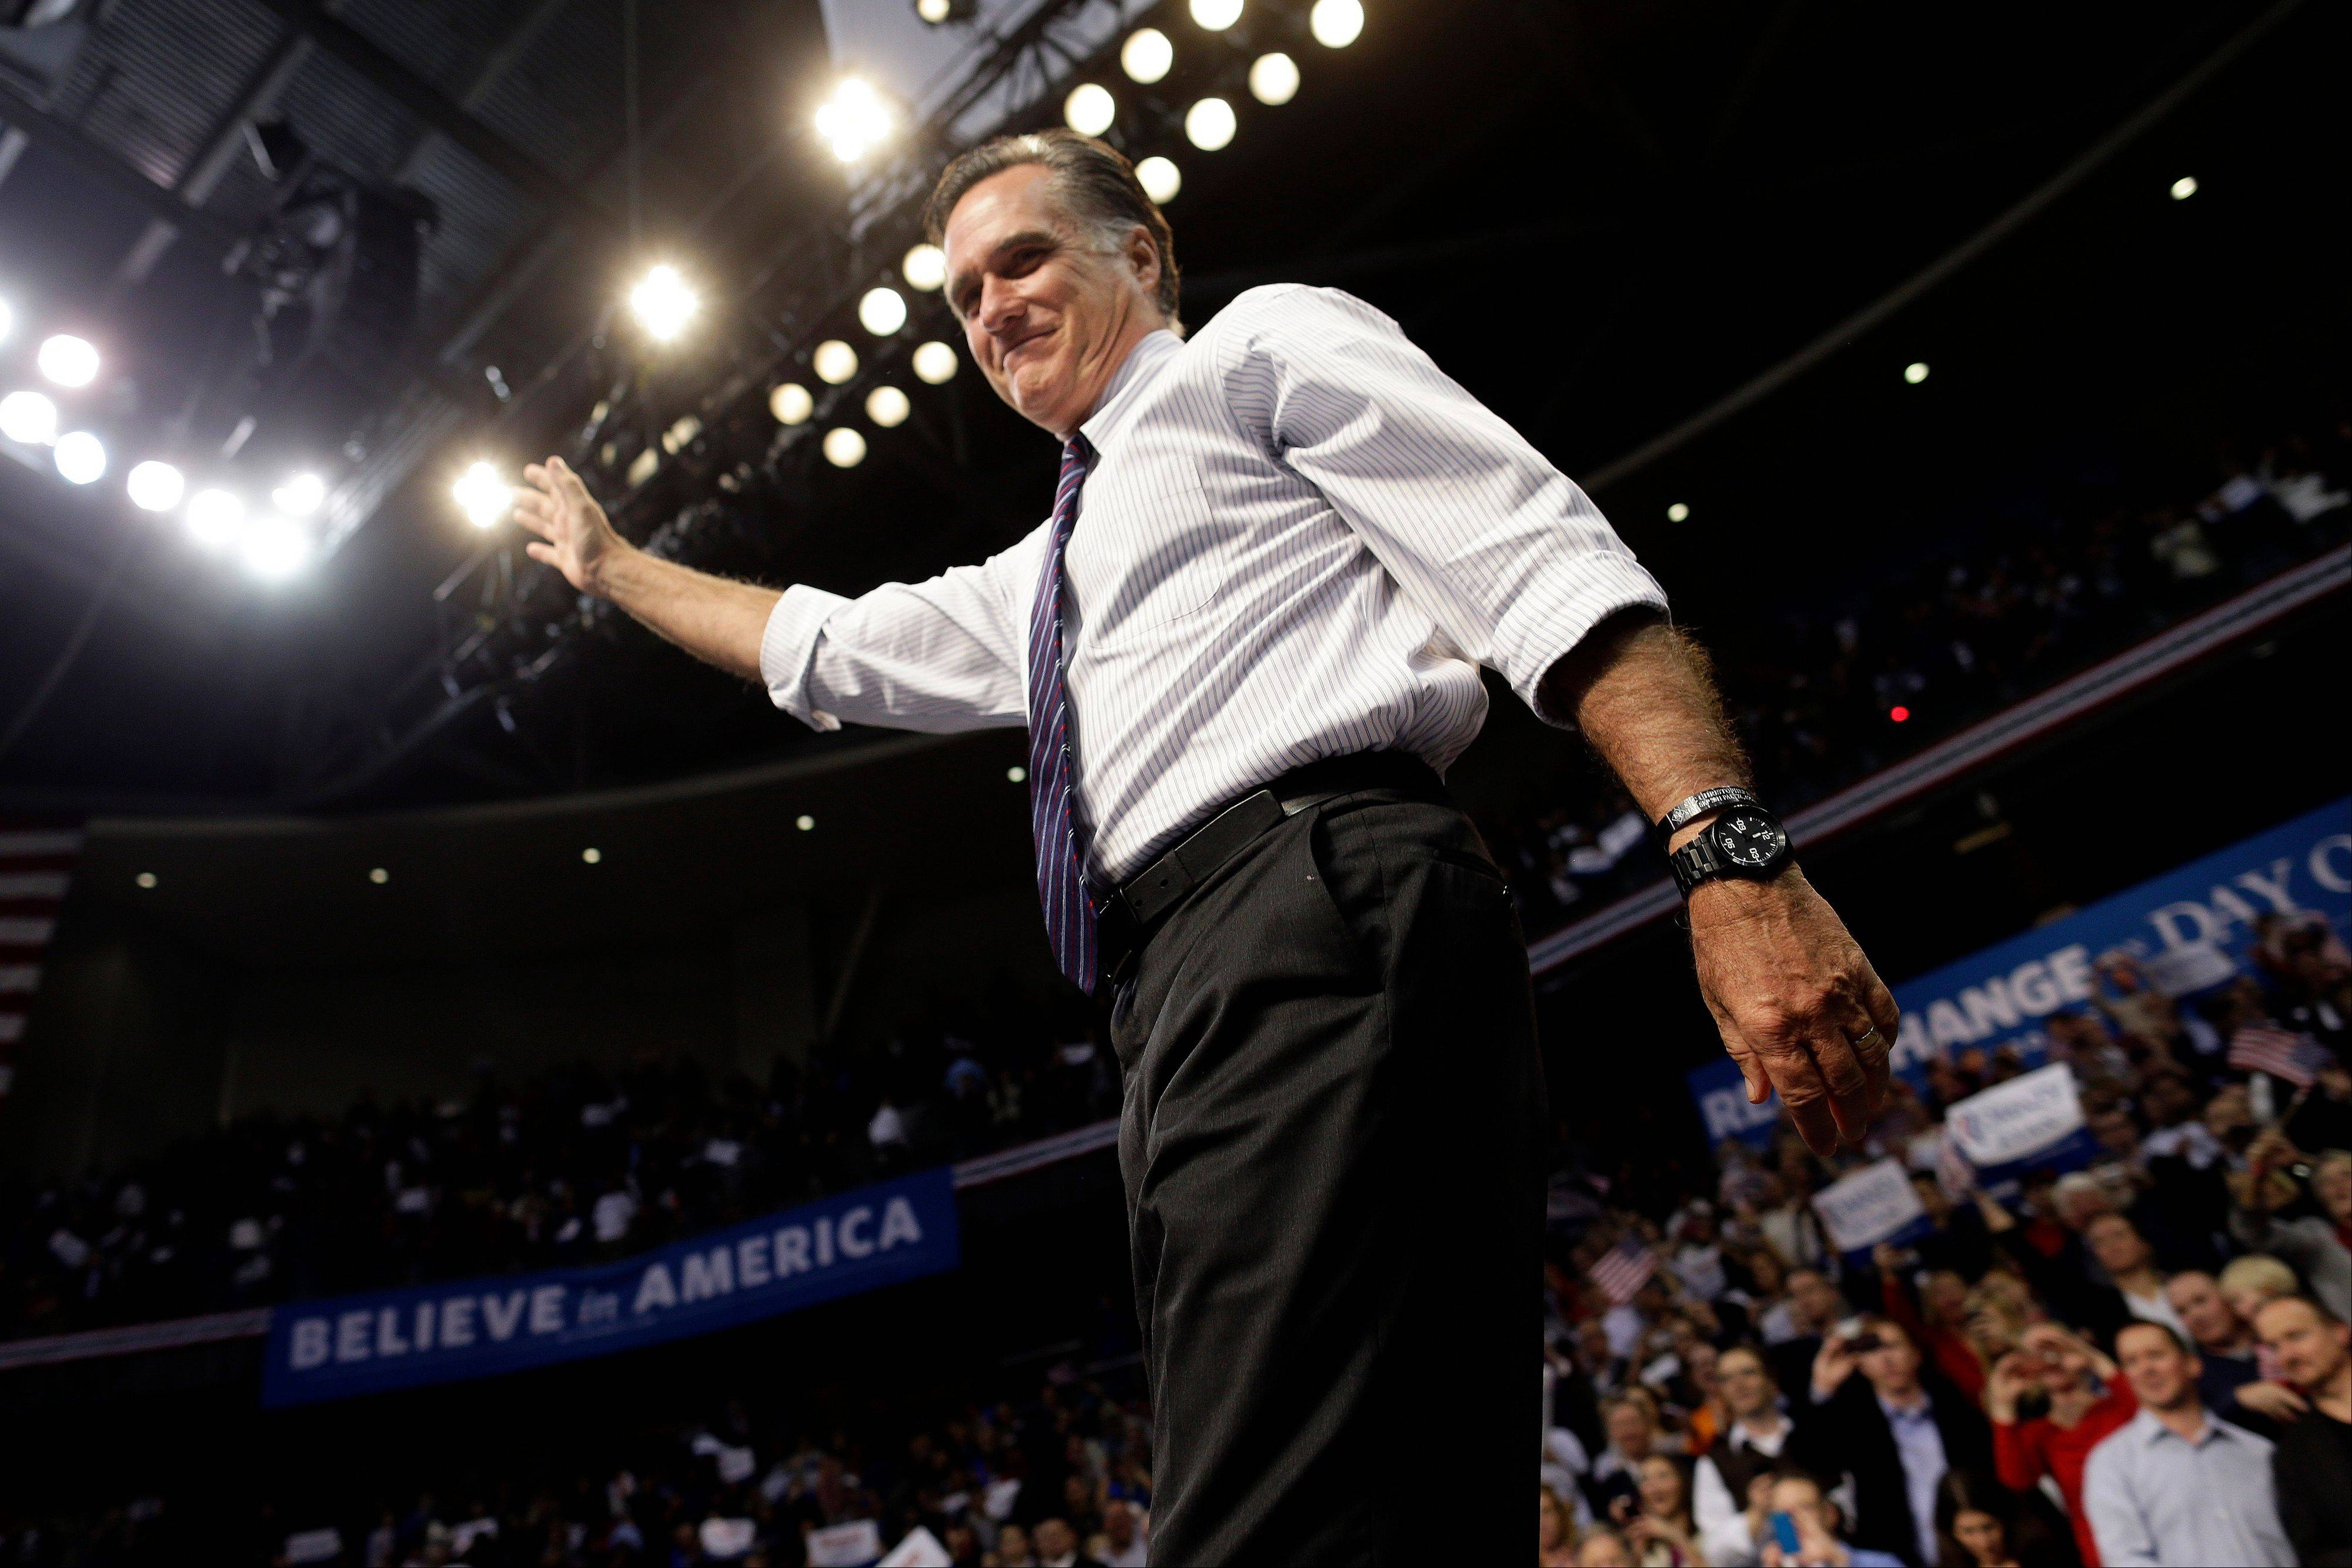 Republican presidential candidate and former Massachusetts Gov. Mitt Romney waves at the end of a New Hampshire campaign rally at Verizon Wireless Arena in Manchester, N.H., Monday.